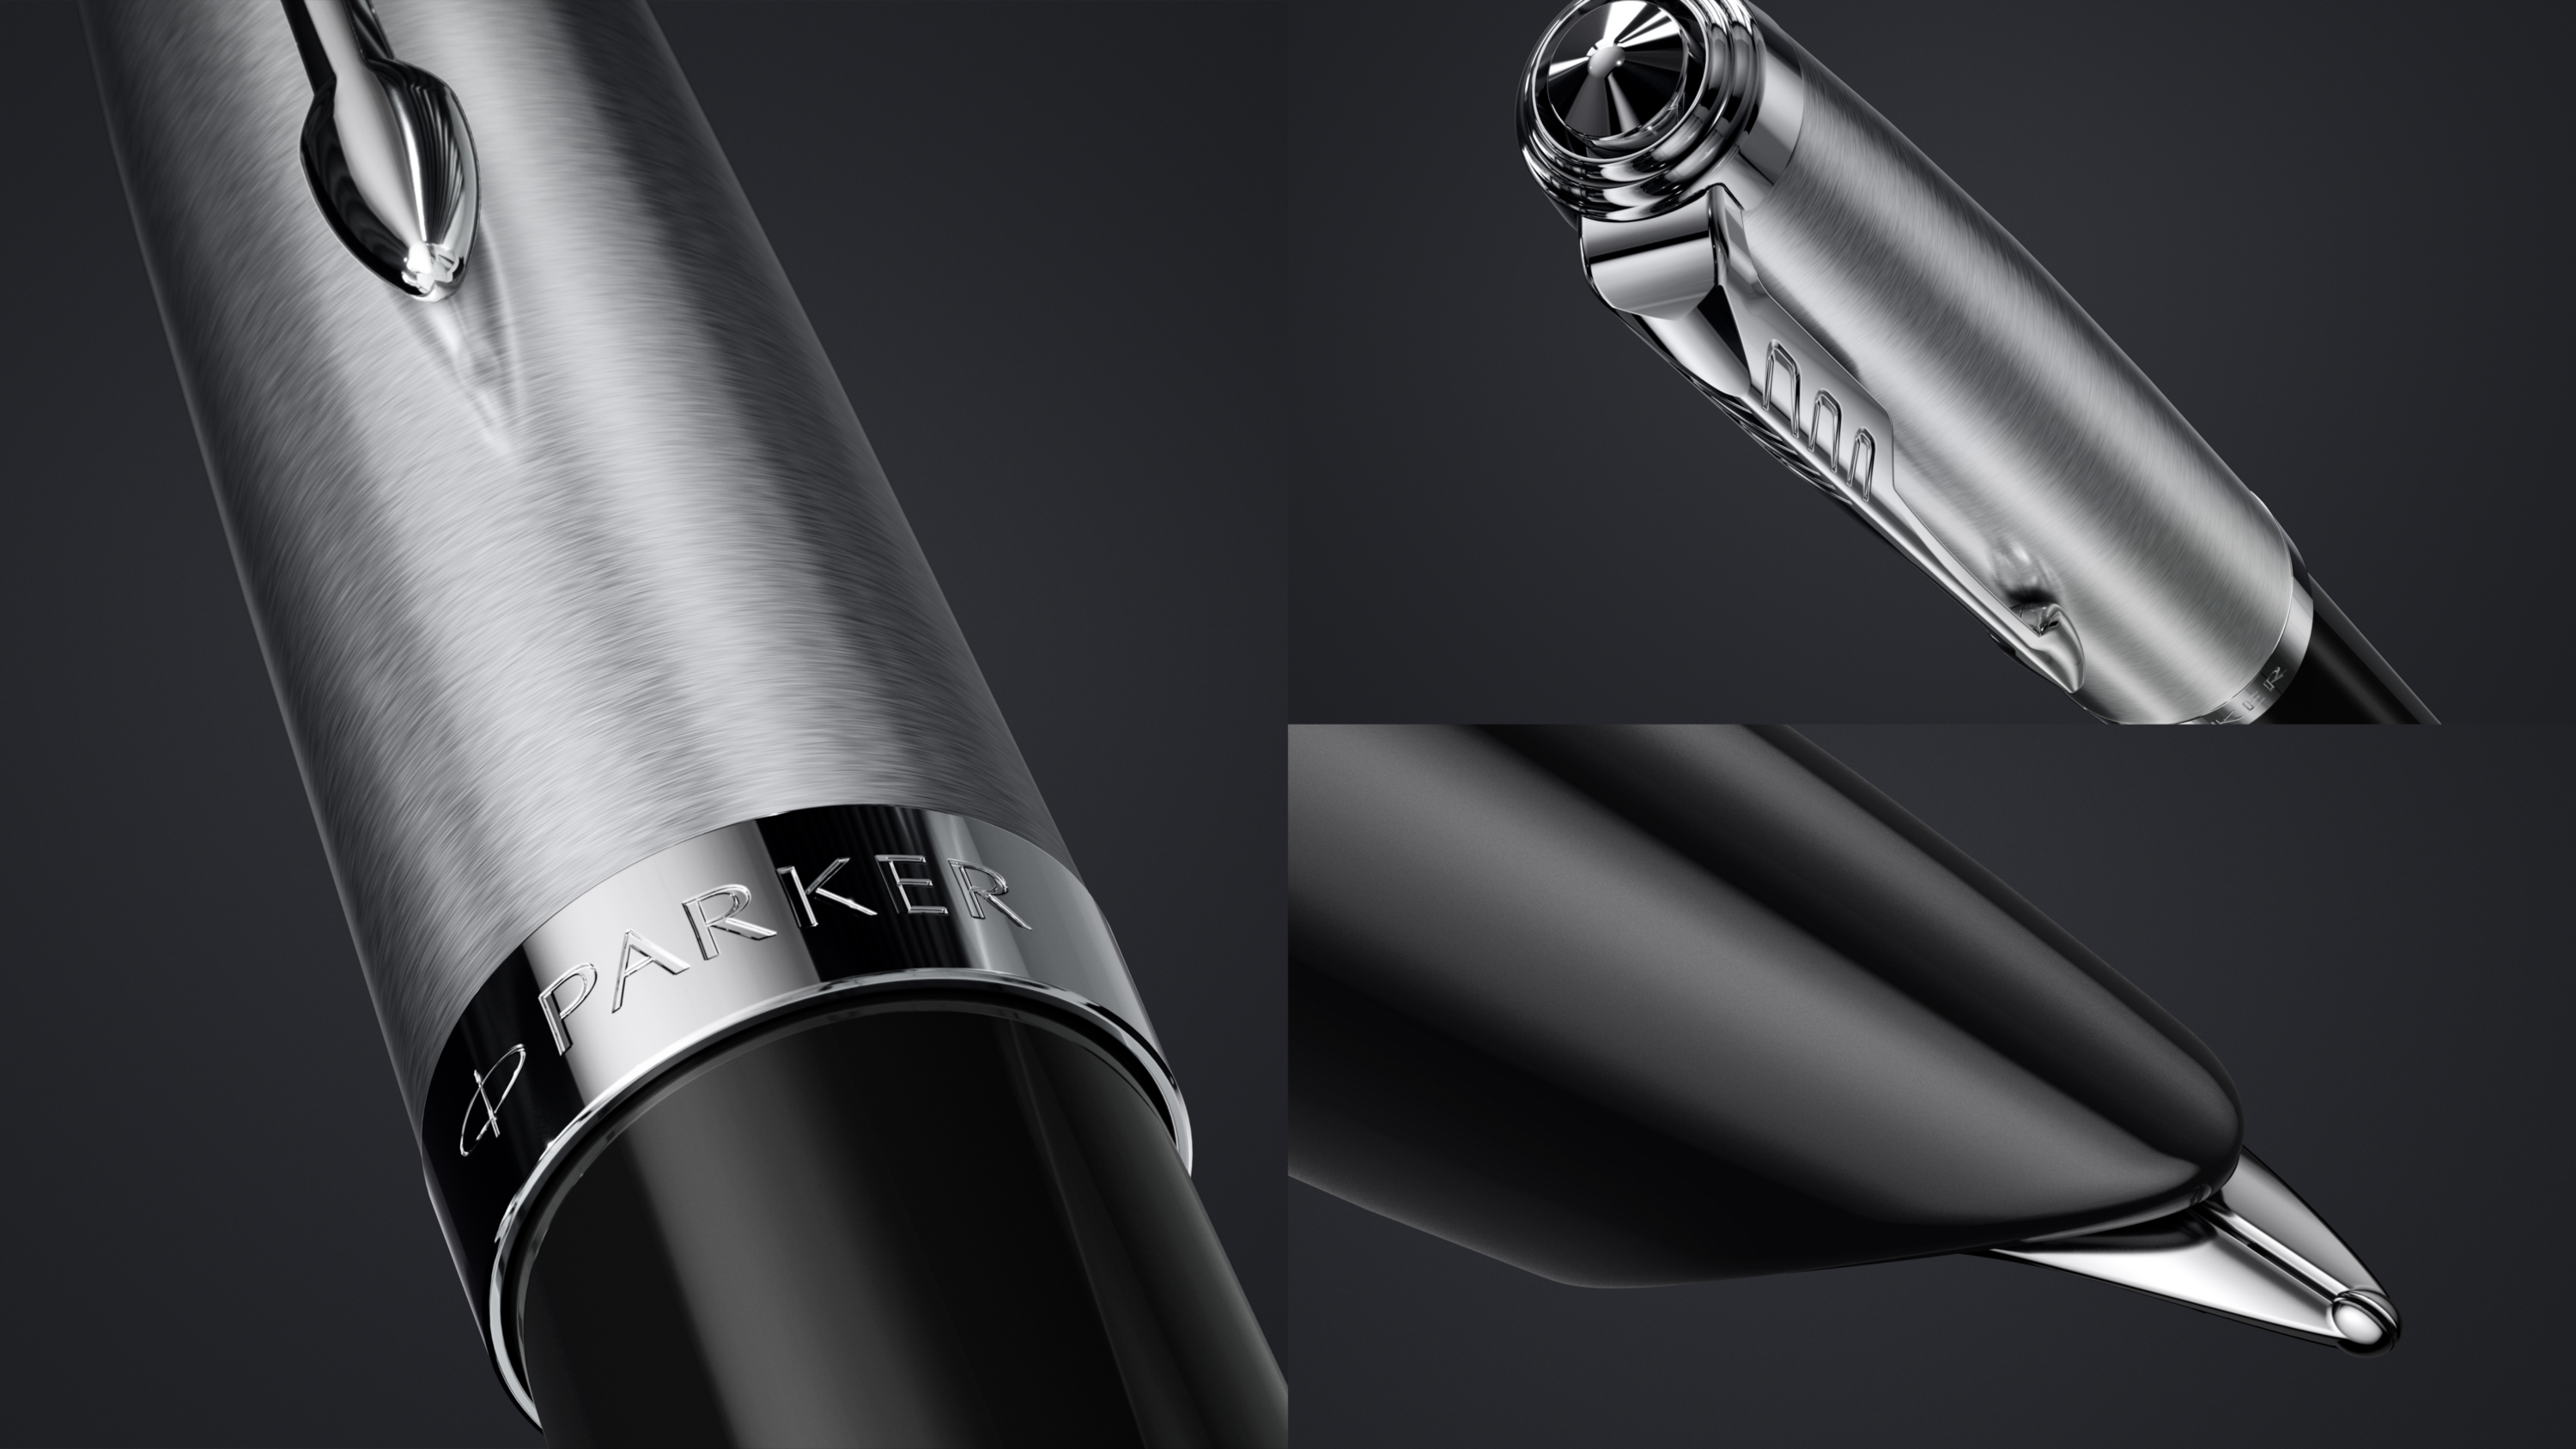 The iconic hooded nib of Parker 51 Black